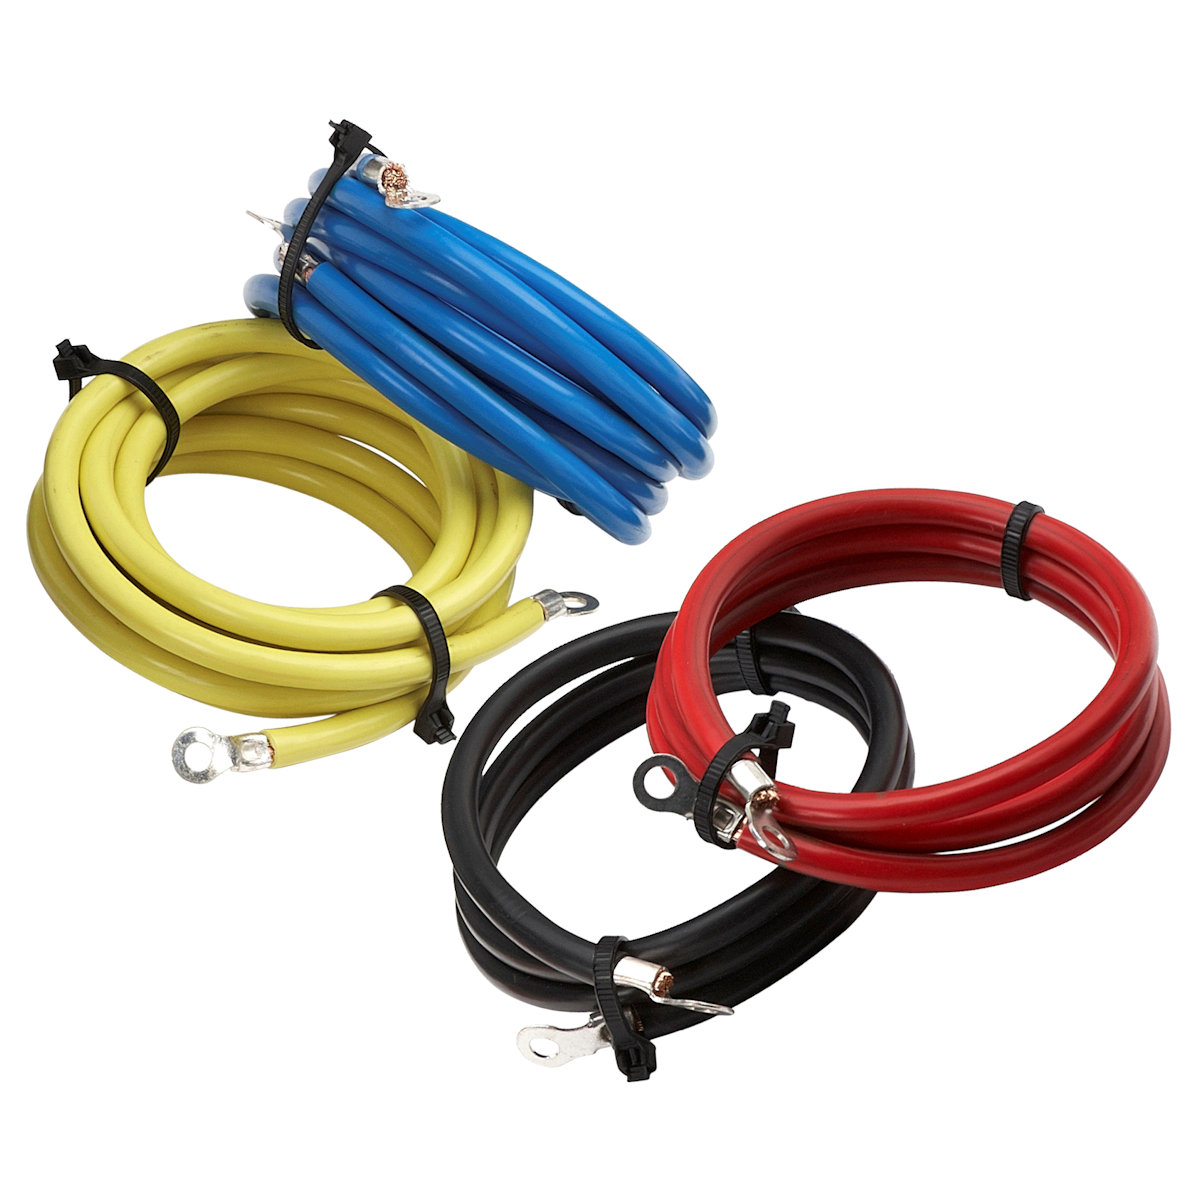 viper atv utv wiring pack technical support winch wiring setup moto alliance [ 1200 x 1200 Pixel ]